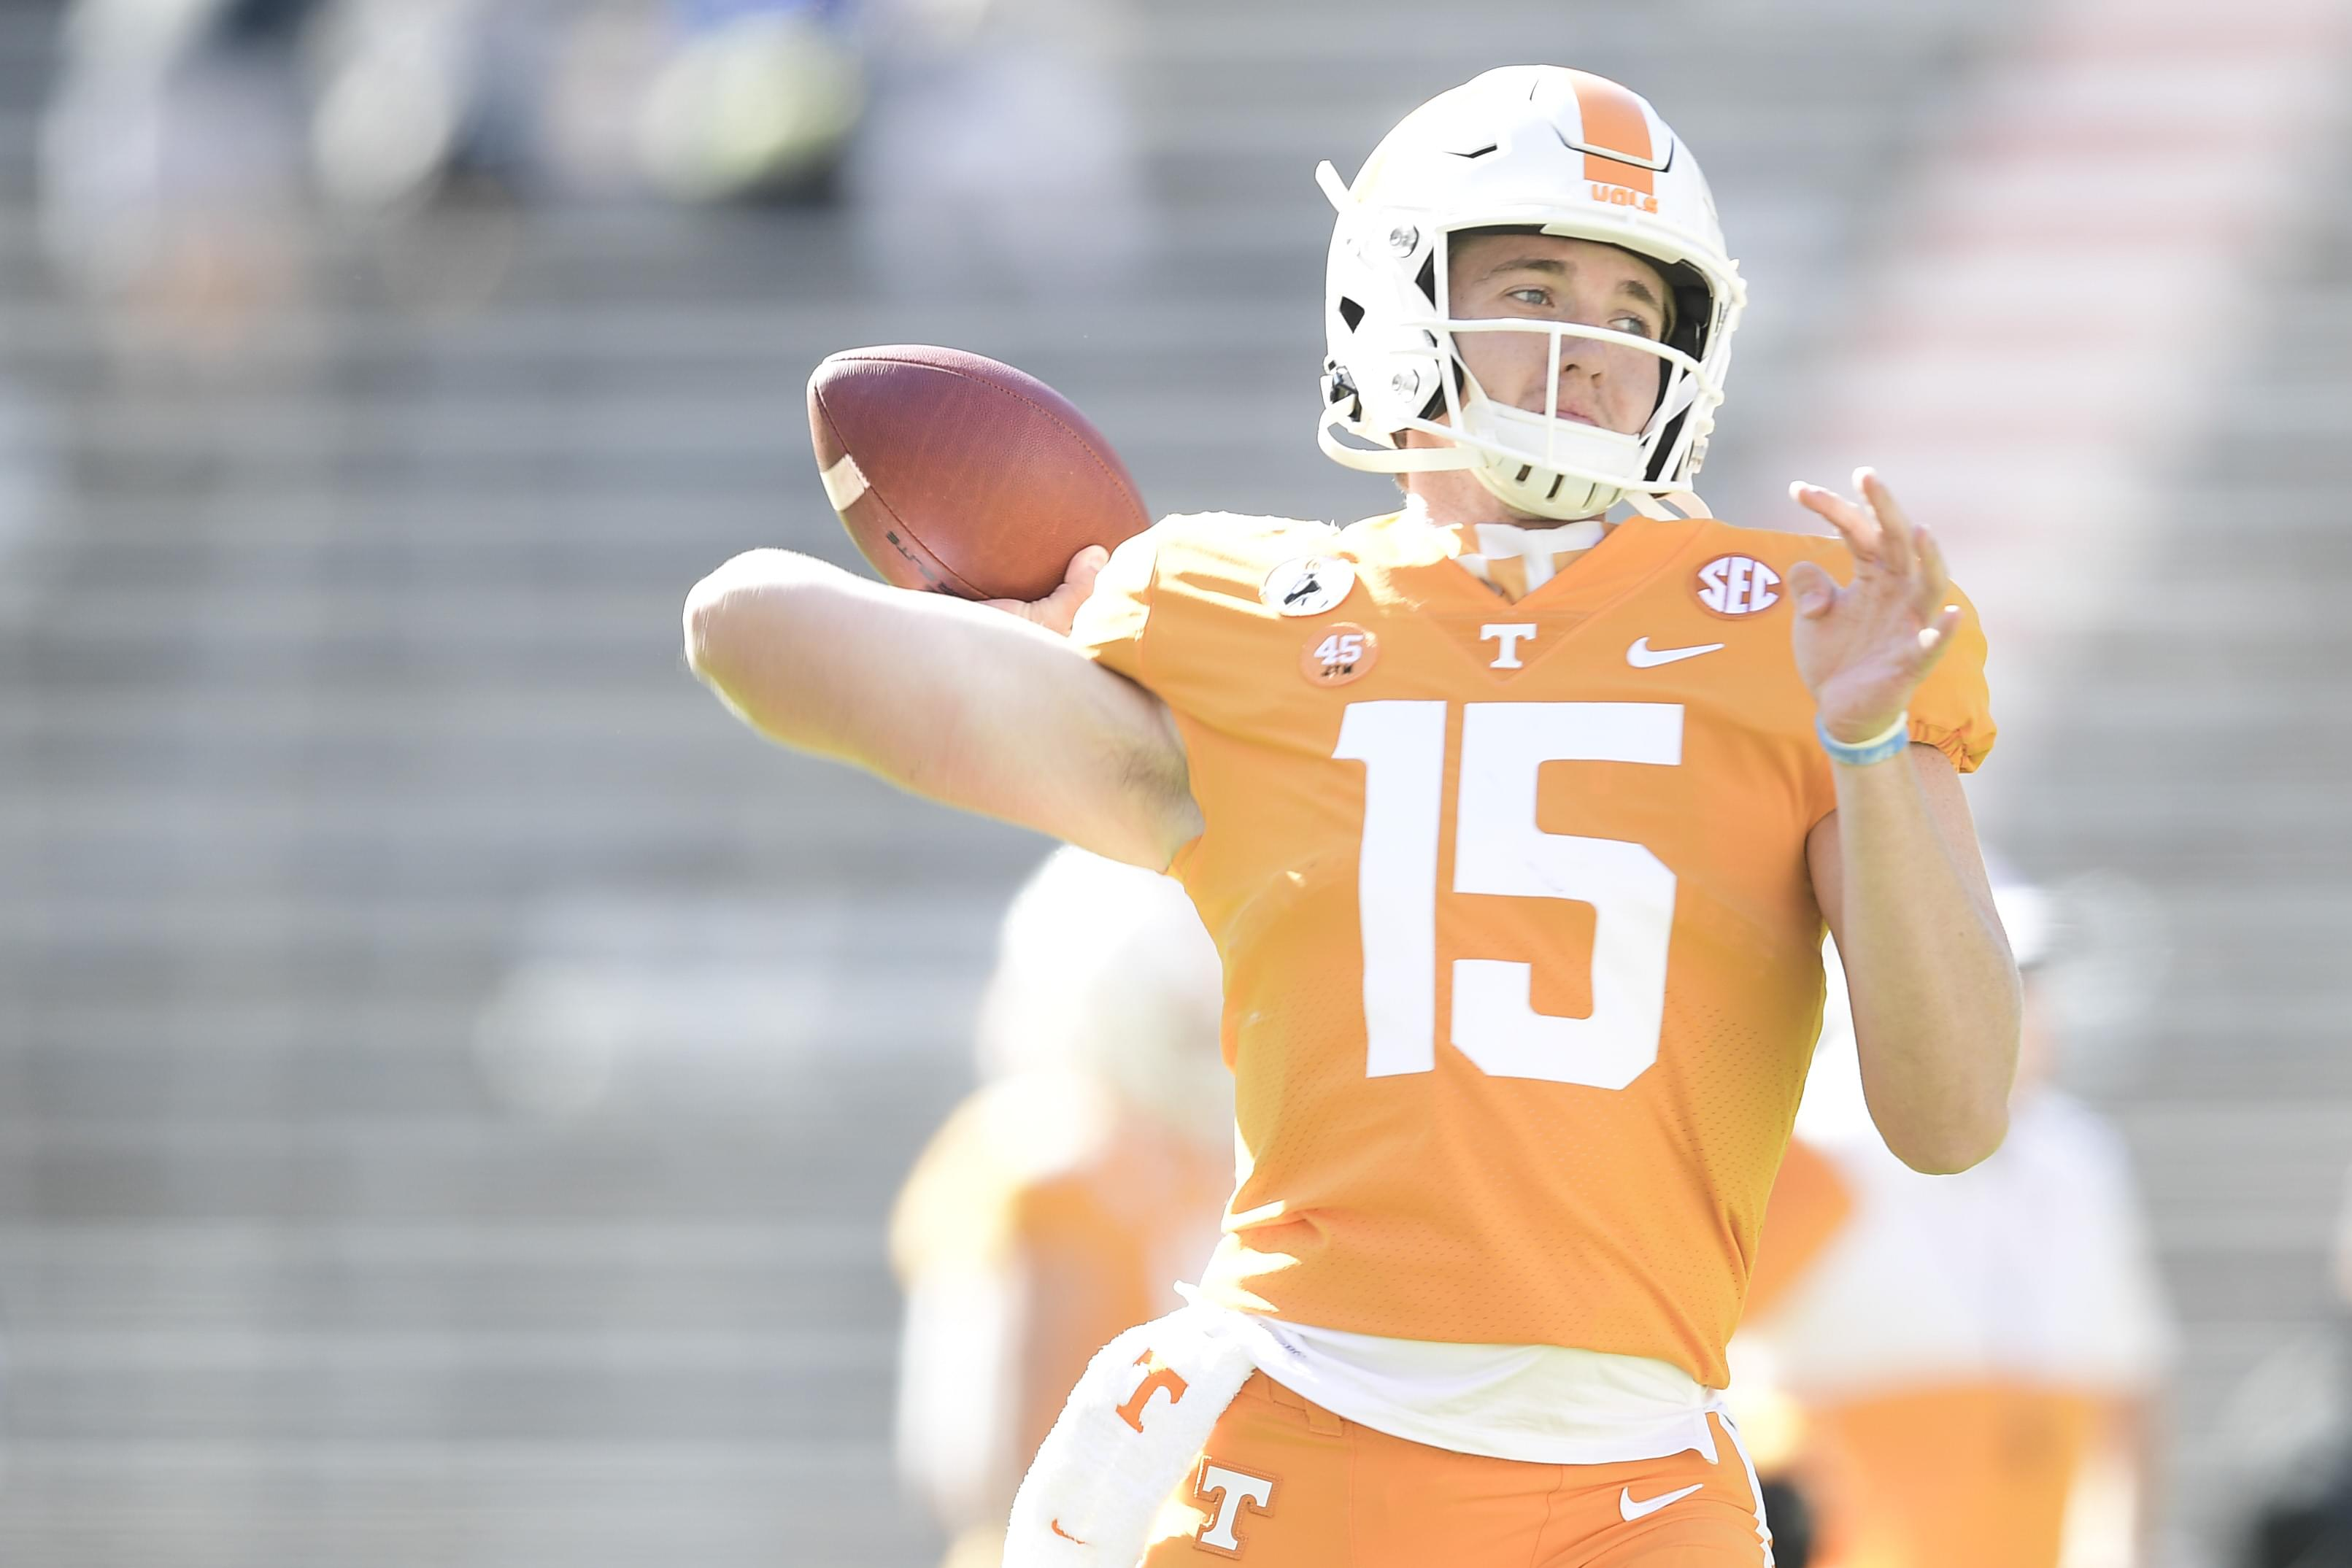 PHOTO GALLERY: Tennessee vs. Kentucky